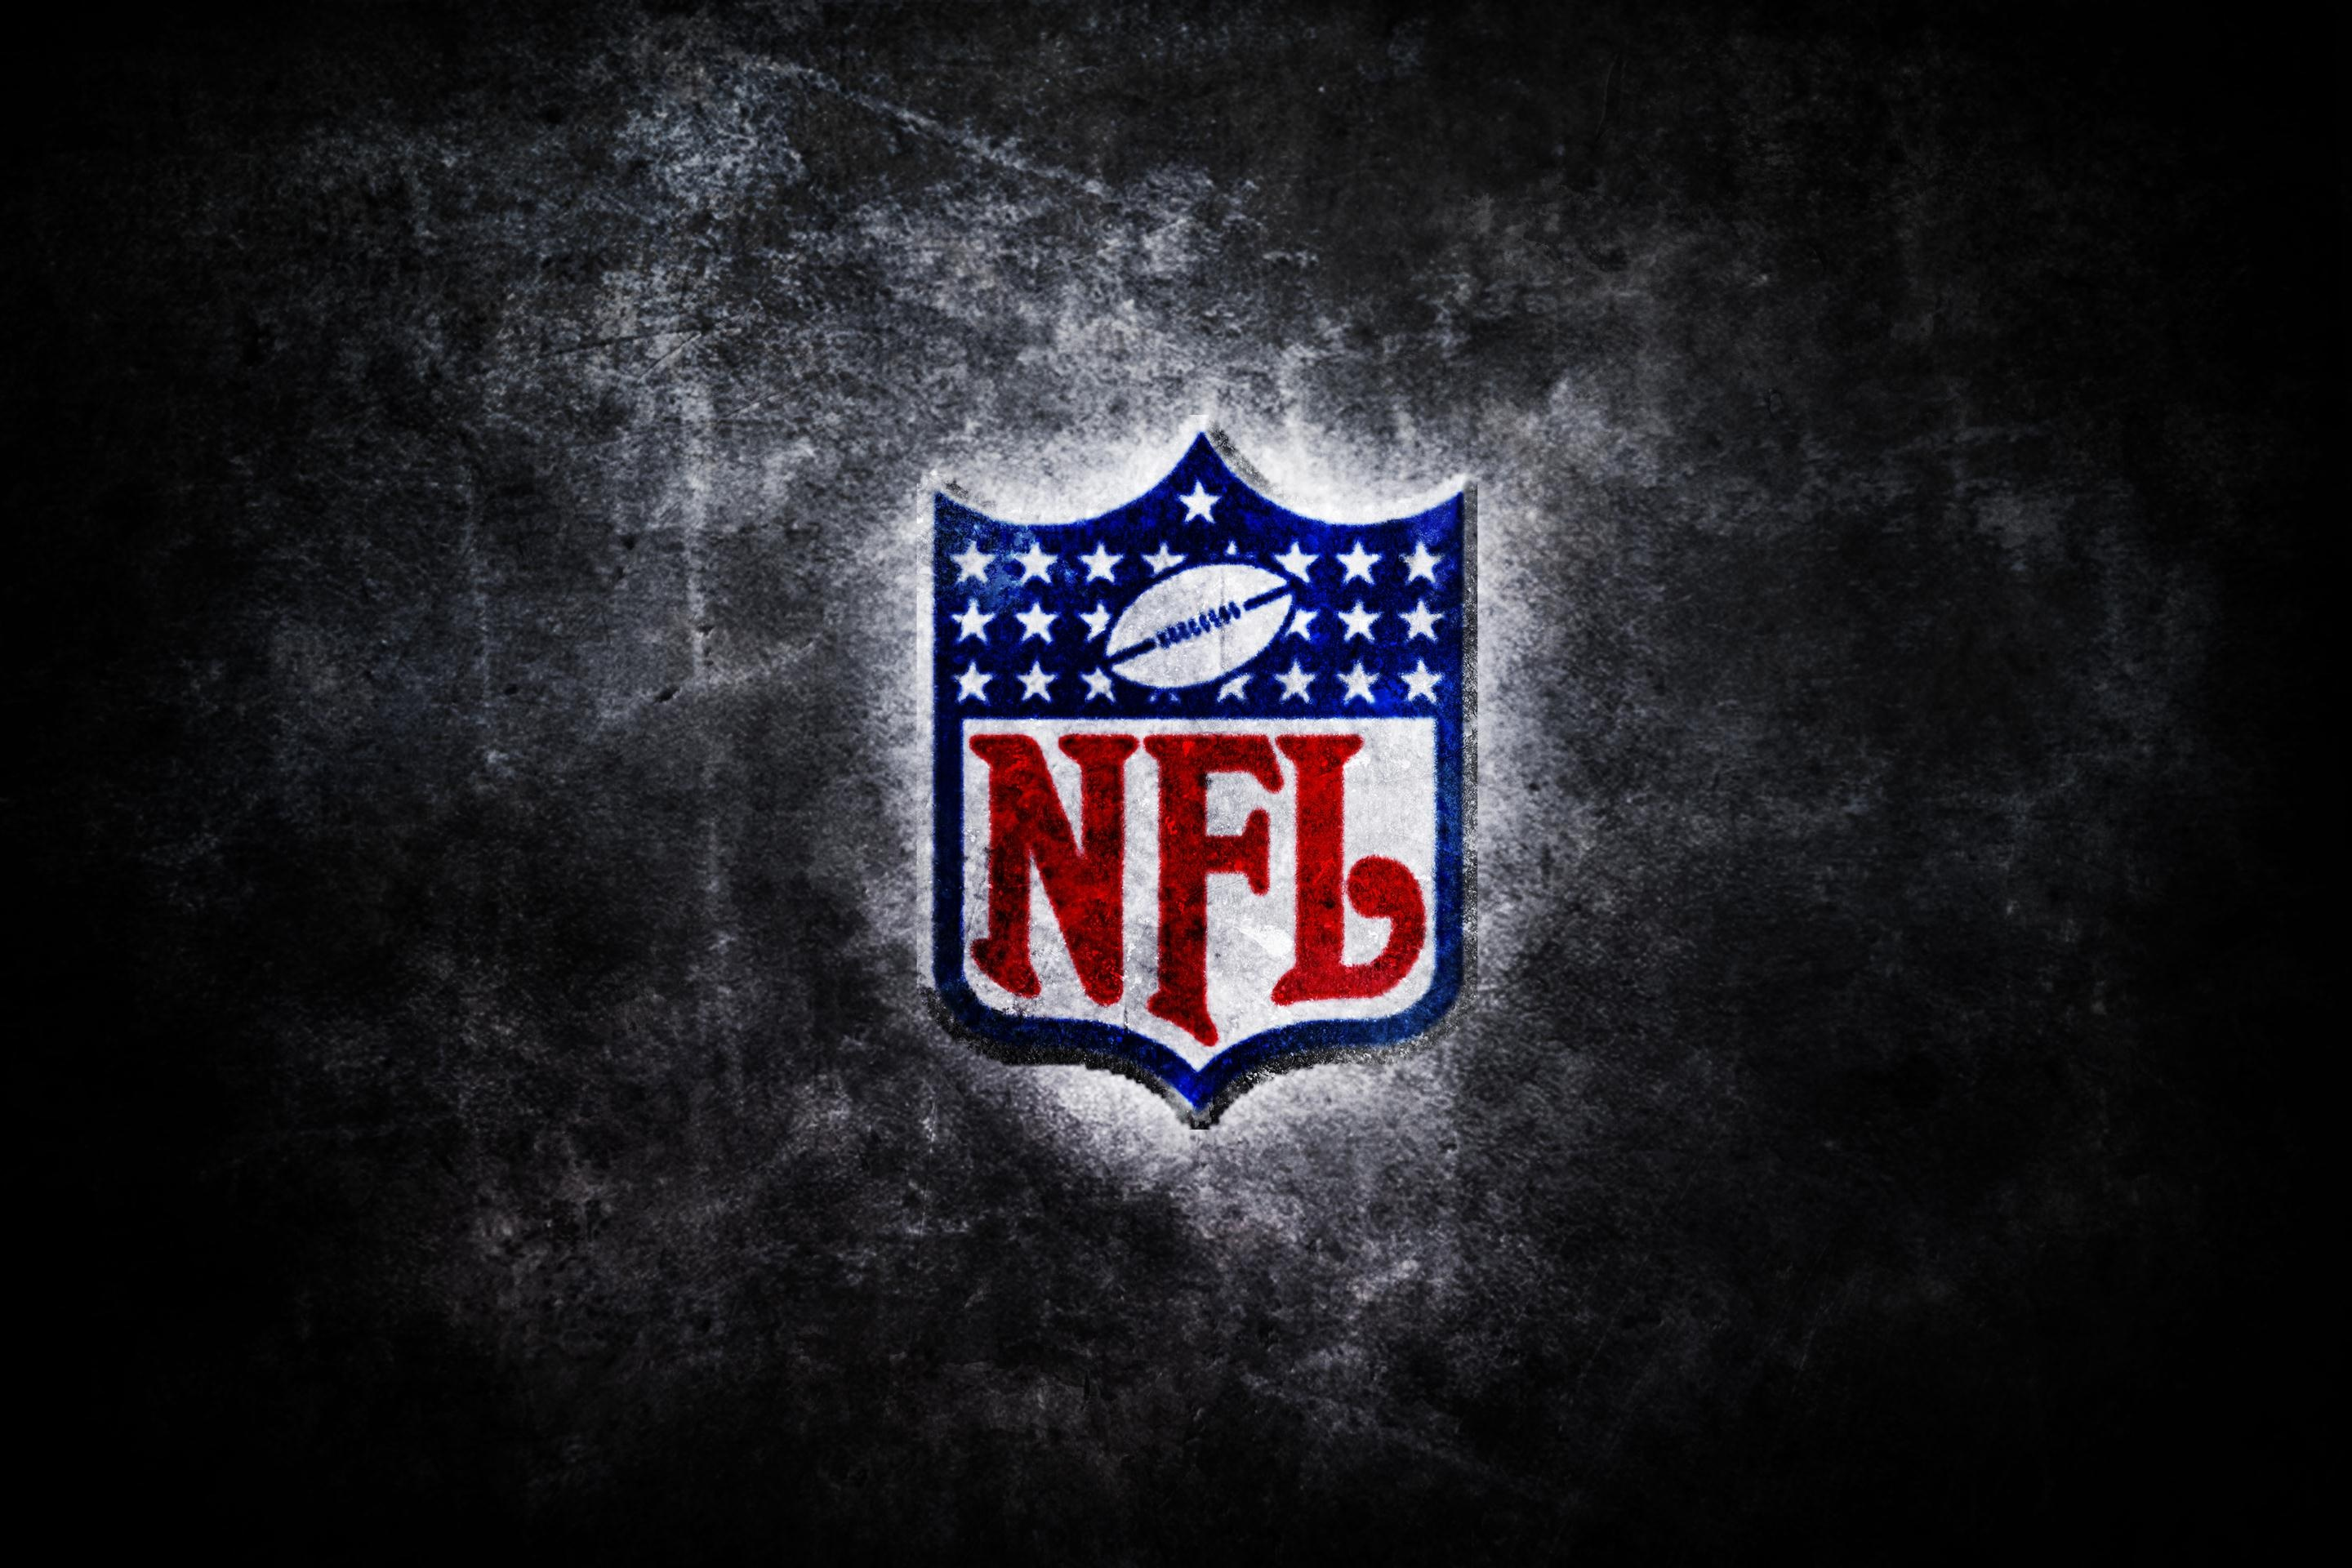 NFL Logo Wallpaper HD 2880x1920